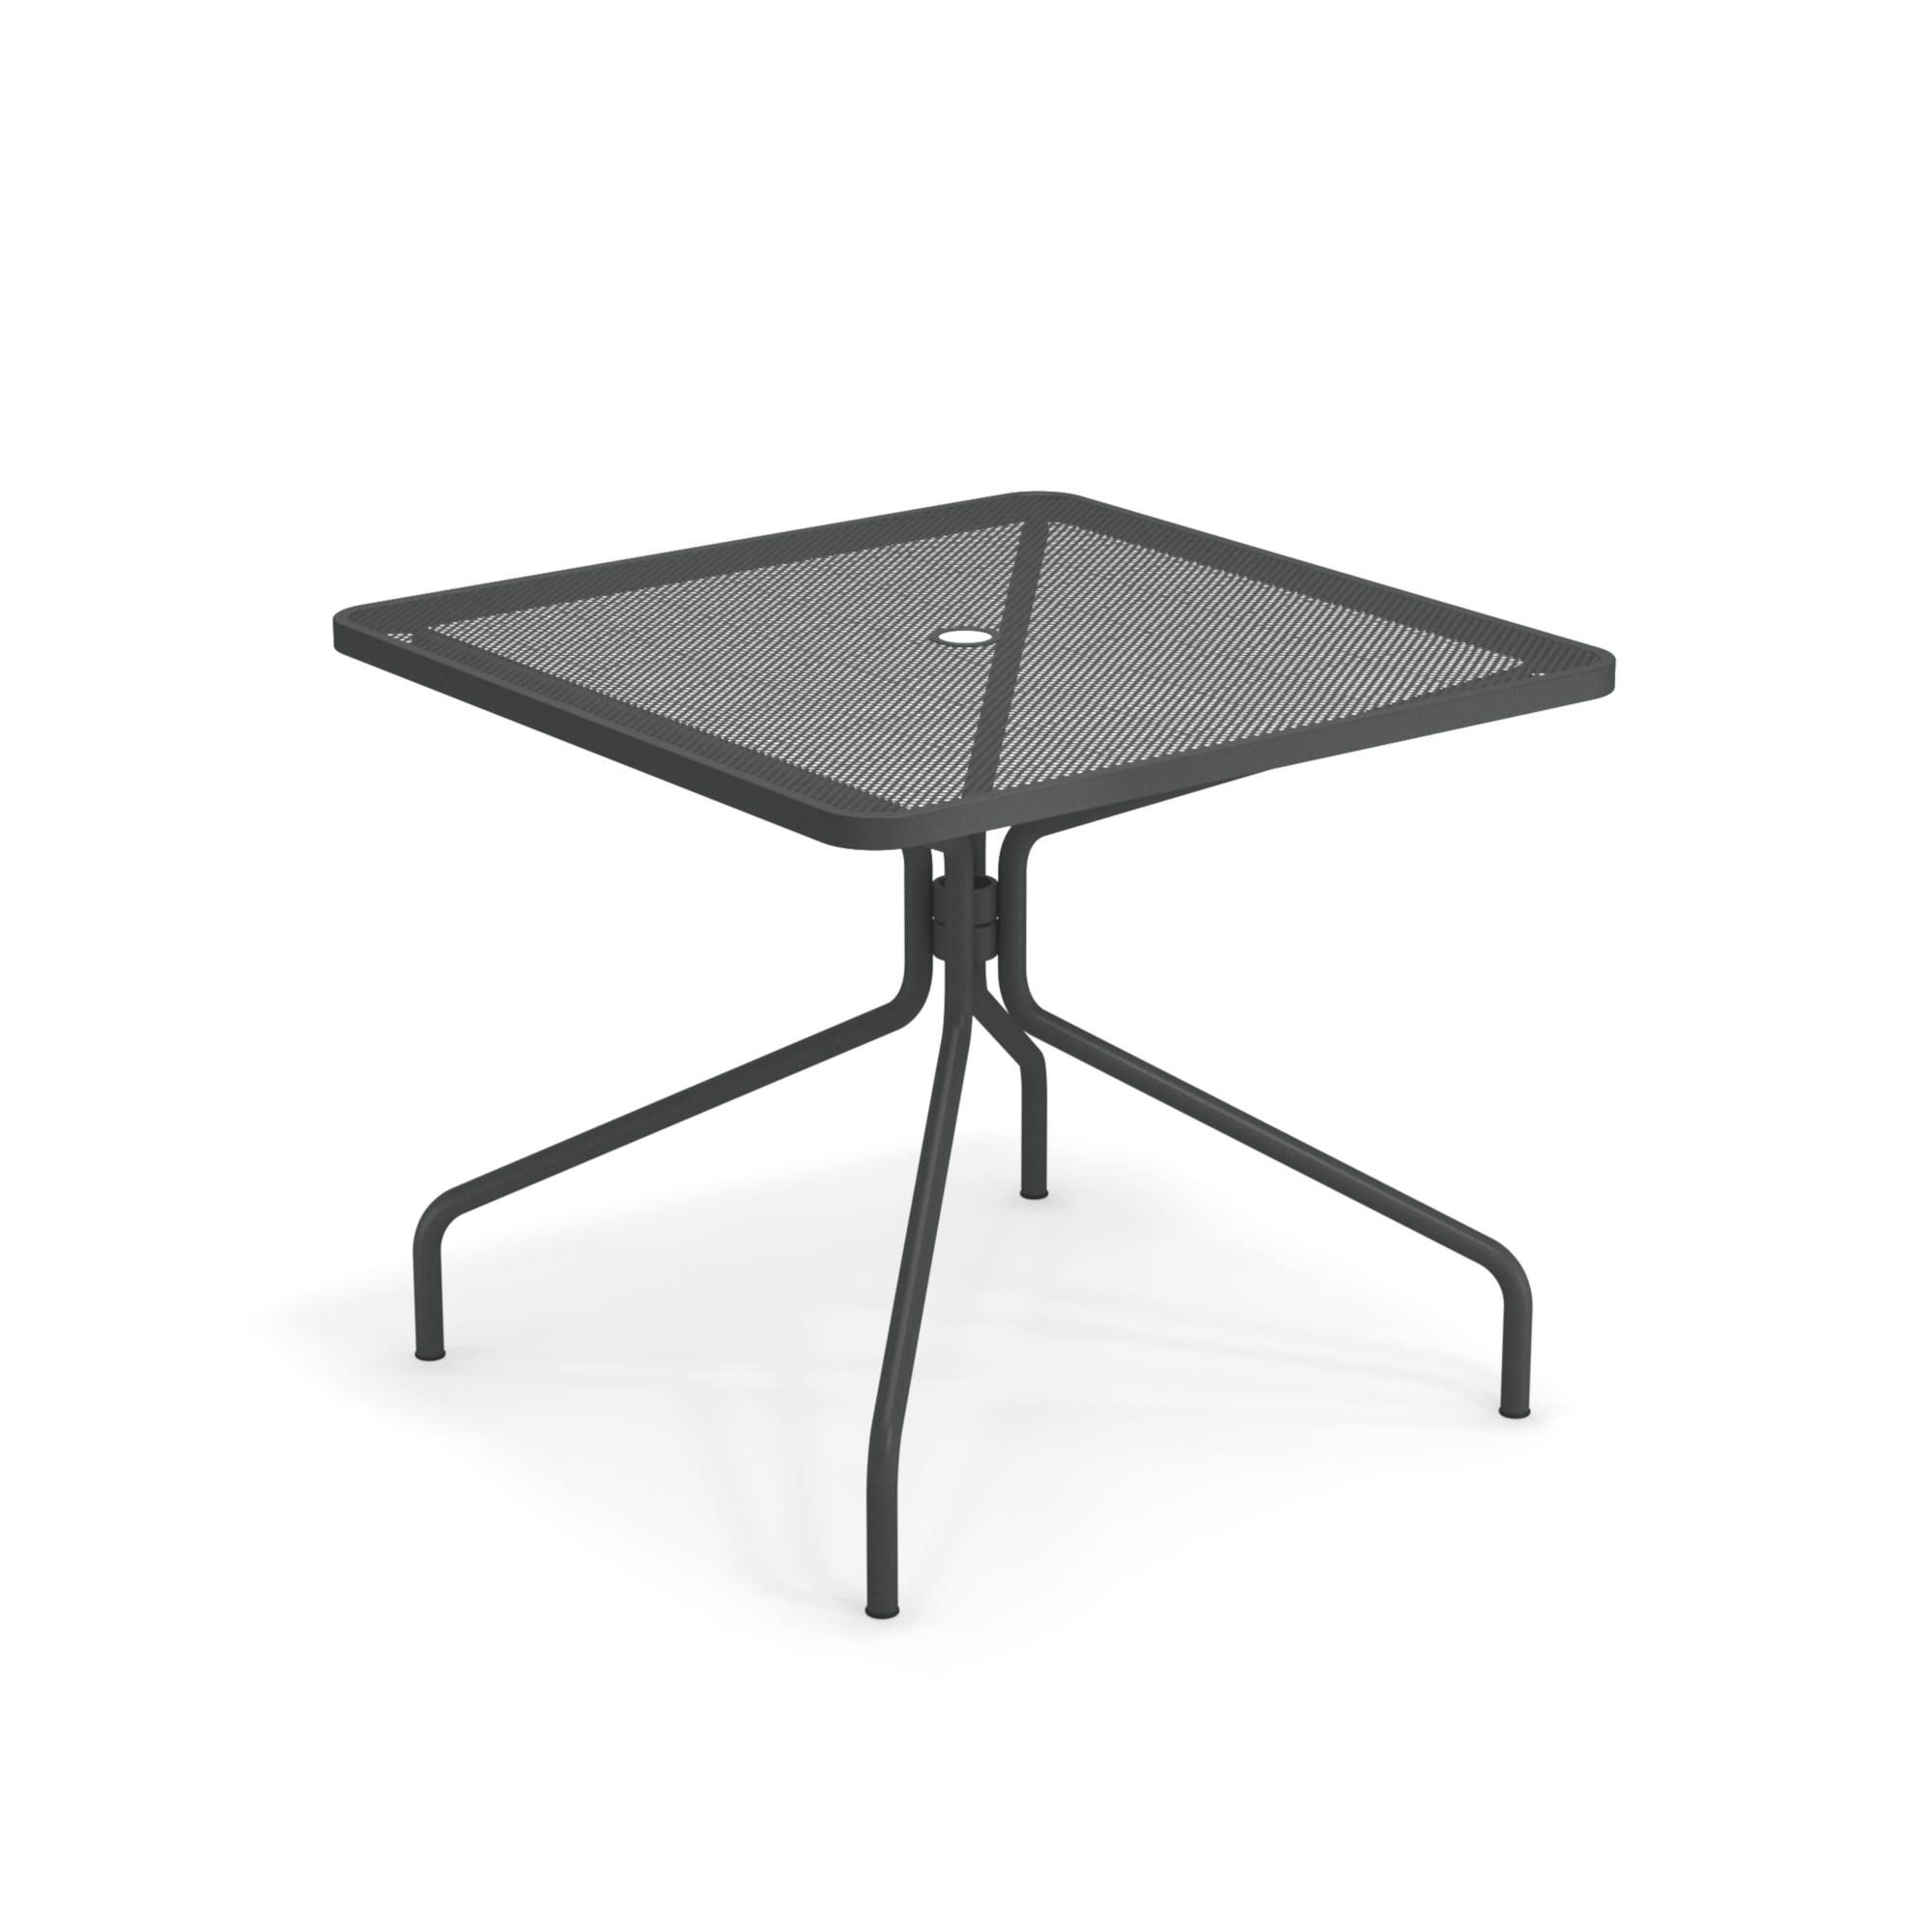 emuamericas, llc 802-22 table, outdoor